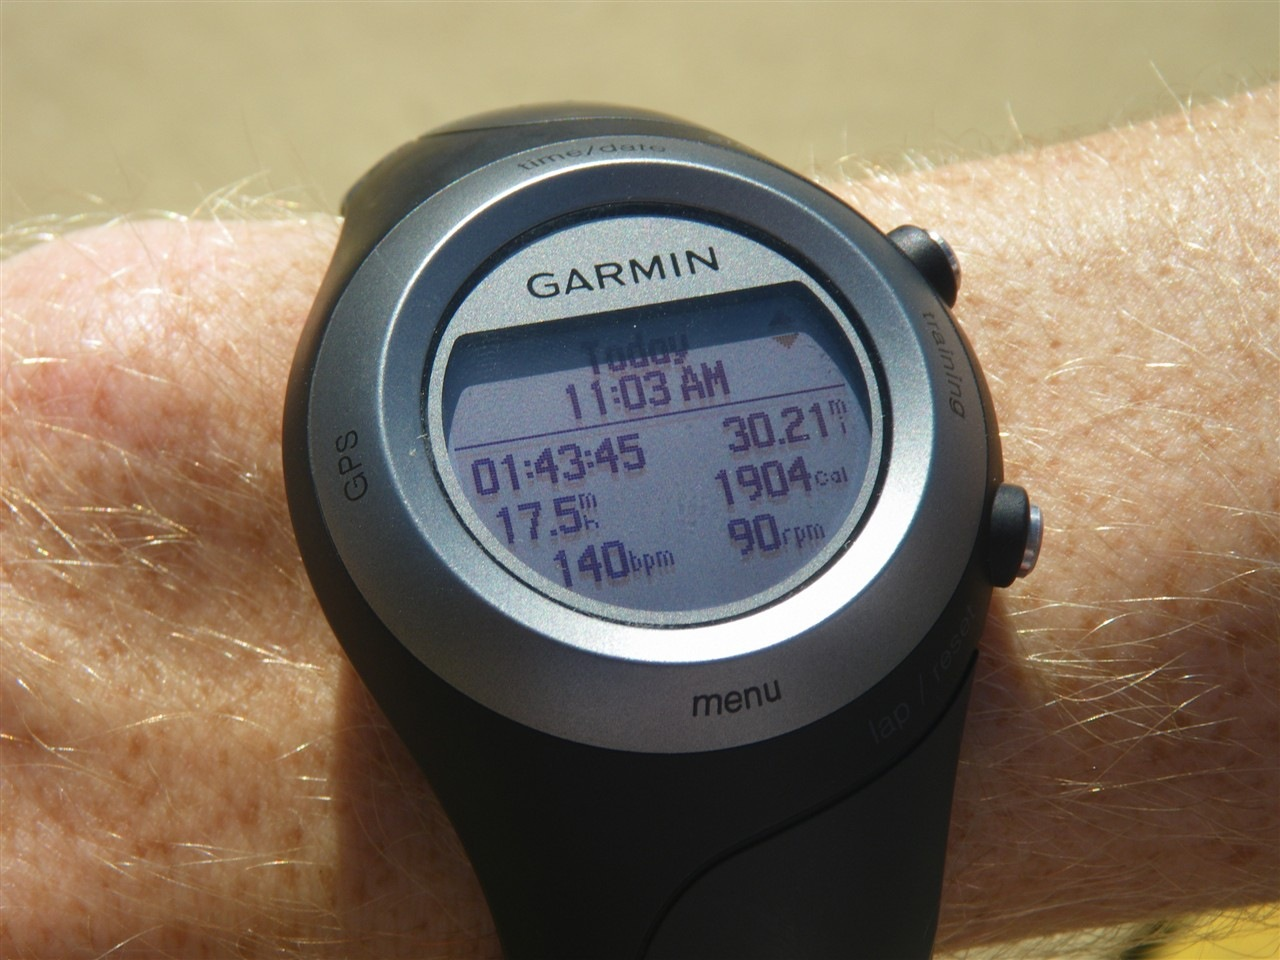 Garmin Forerunner in depth review October 13, by DC Rainmaker | Garmin» Product Reviews | Comments () I picked up the Forerunner back when it first came out this spring, and have been using it over the summer and into early fall.